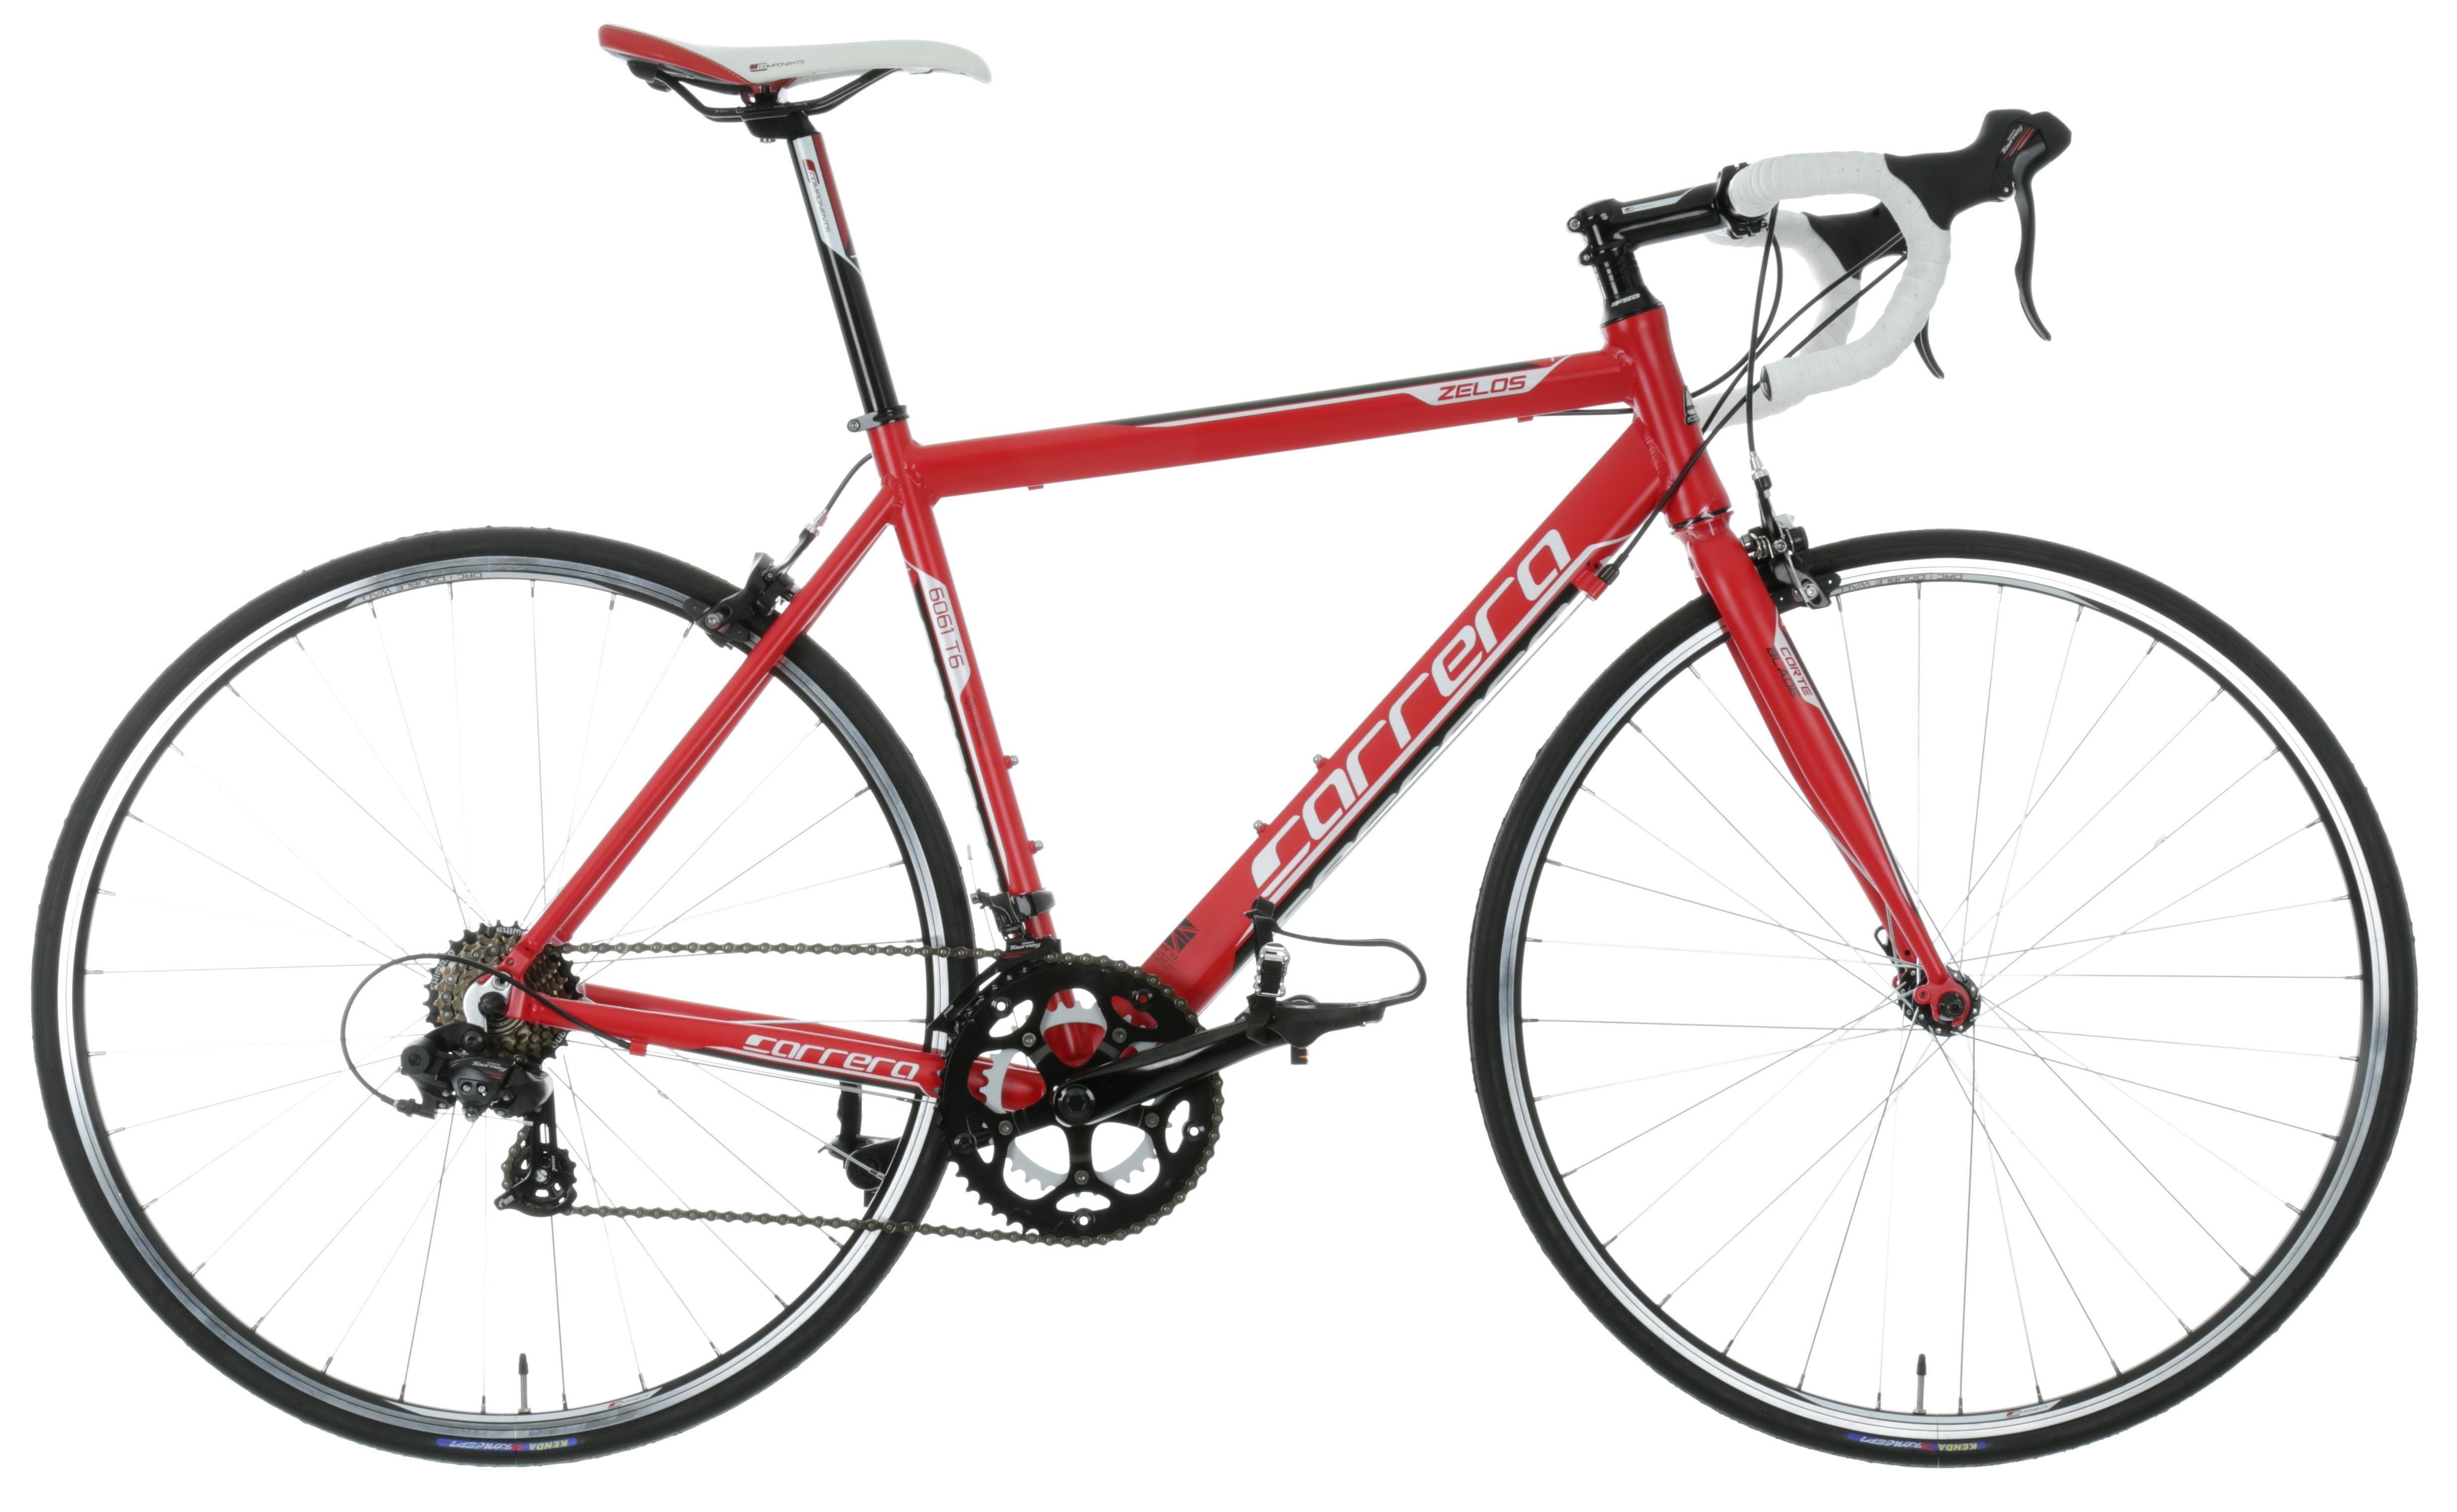 The Carrera Zelos Road Bike 2015 Is Great For Getting You Where